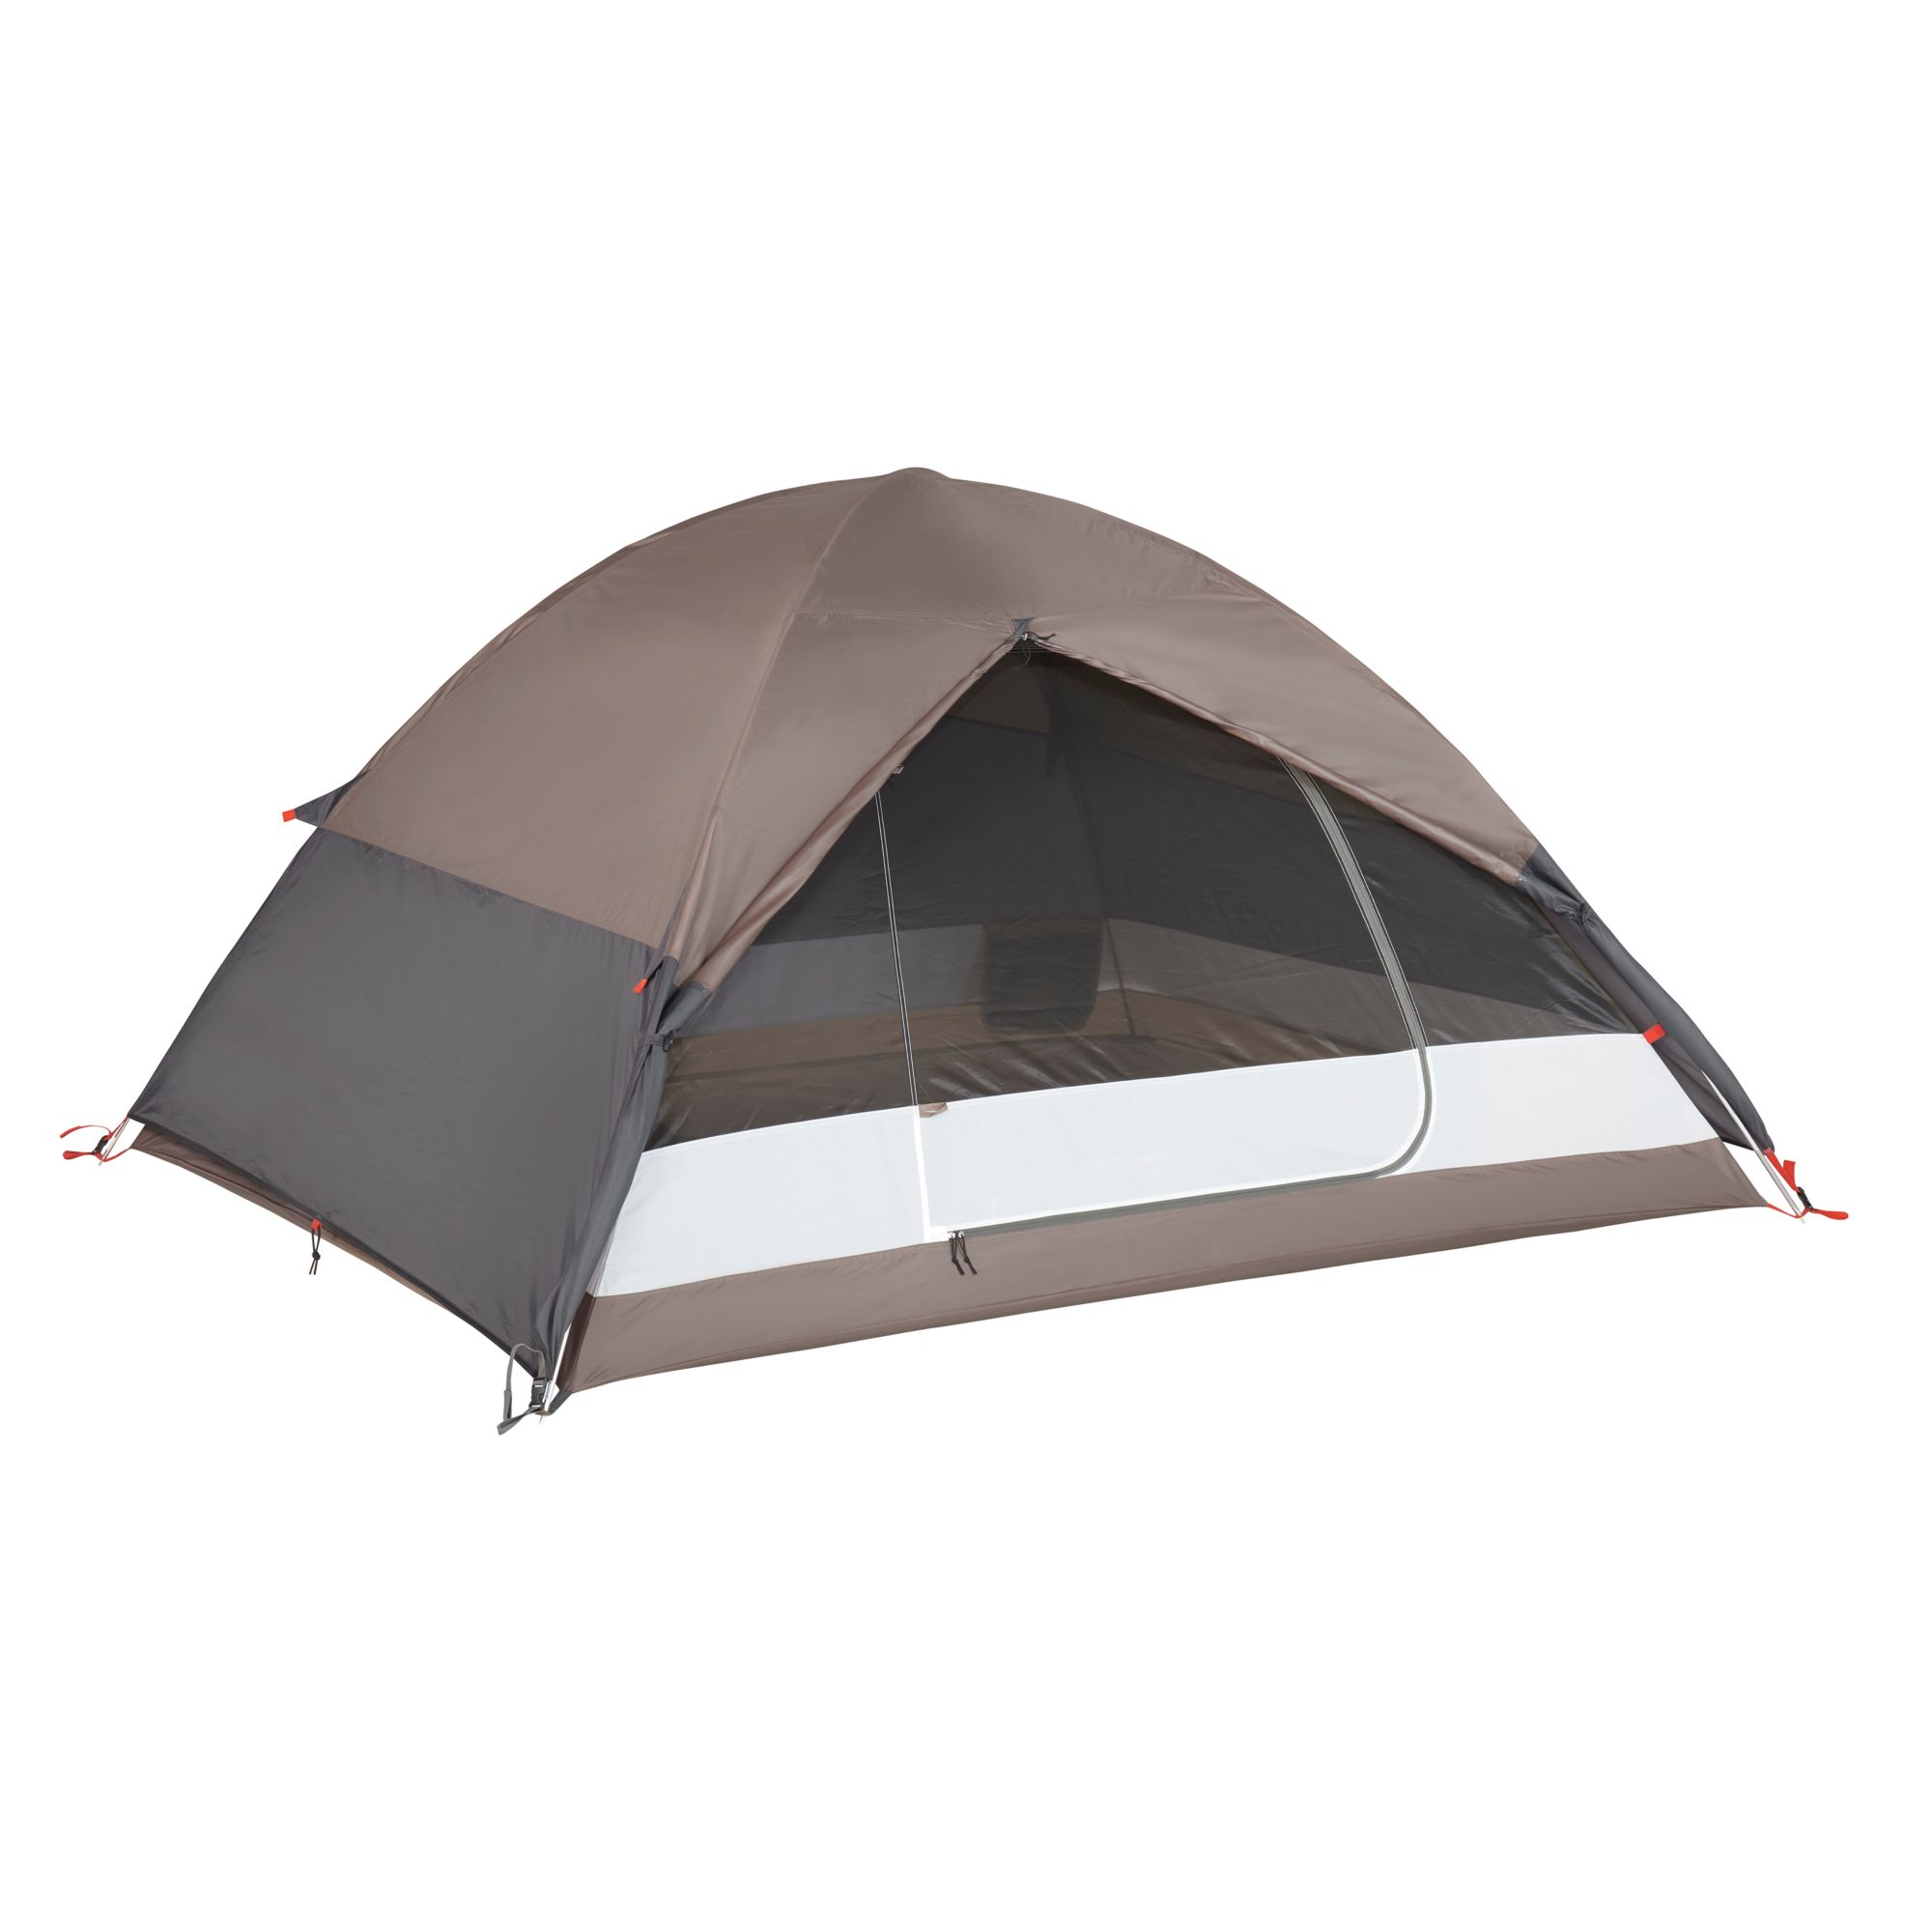 Kelty Circuit 3 Person Backpacking Tent  sc 1 st  Field u0026 Stream & Kelty Circuit 3 Person Backpacking Tent | Field u0026 Stream